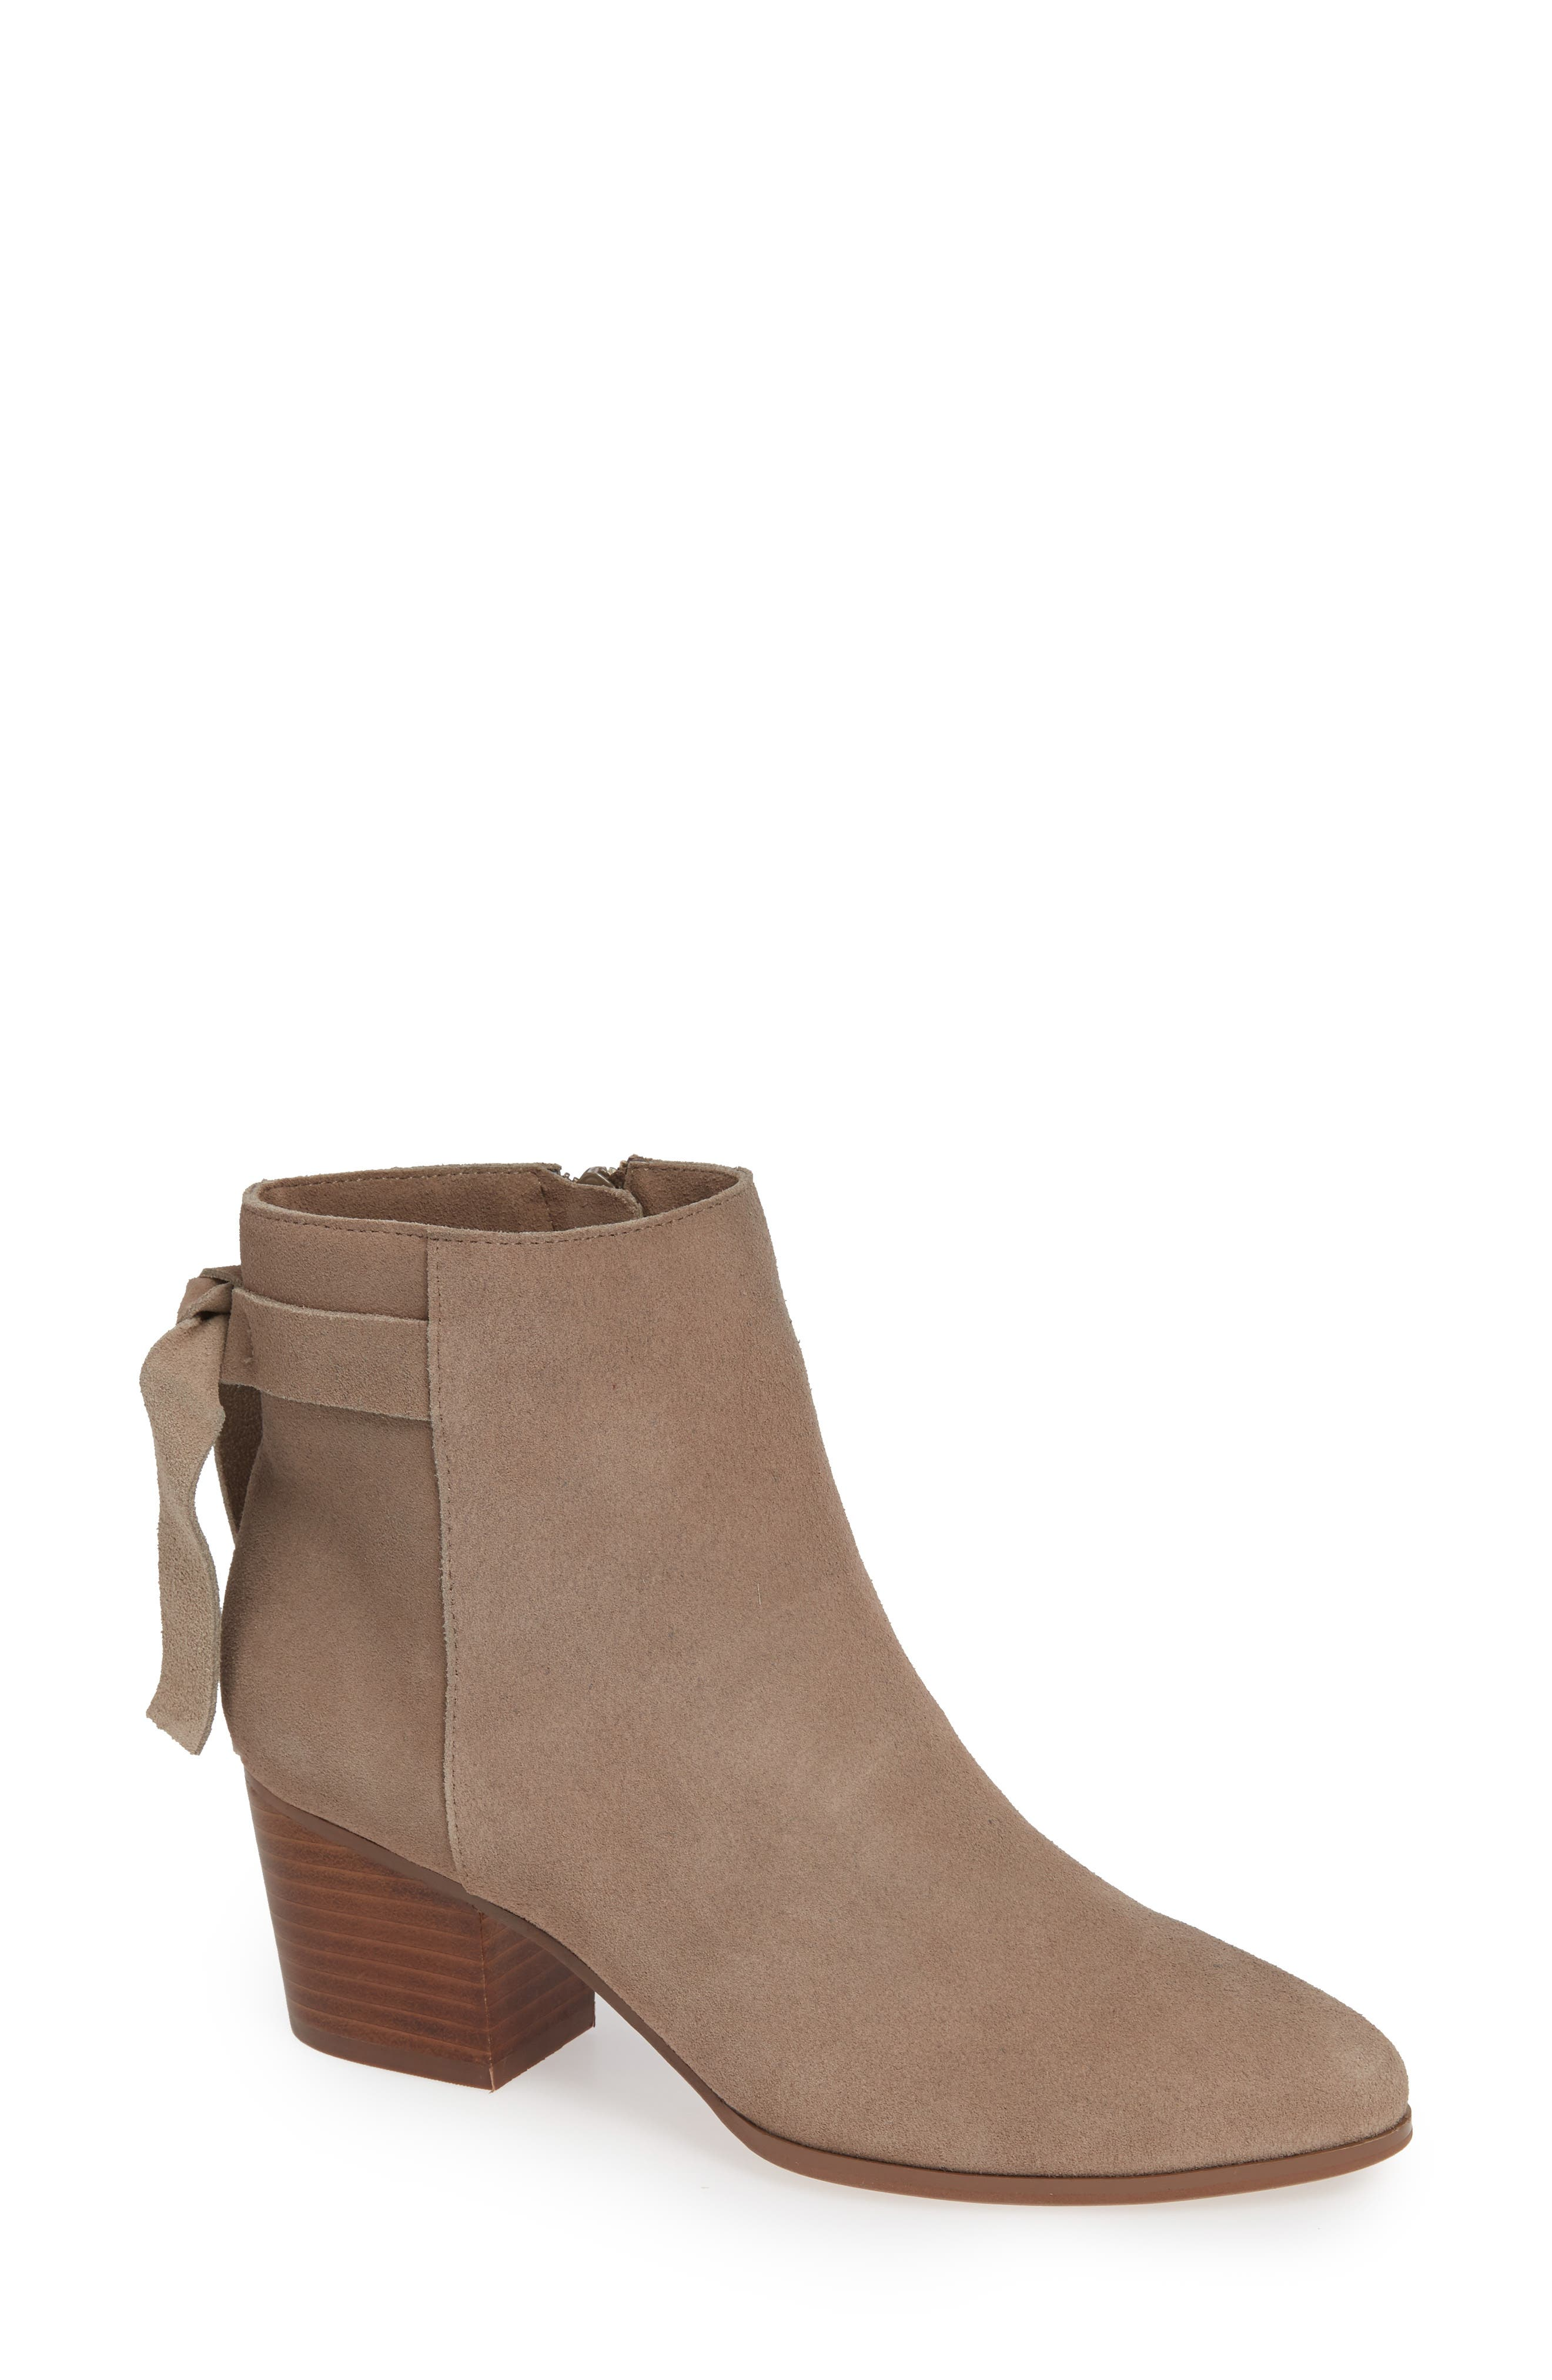 SOLE SOCIETY, Rhilynn Bootie, Main thumbnail 1, color, FALL TAUPE SUEDE